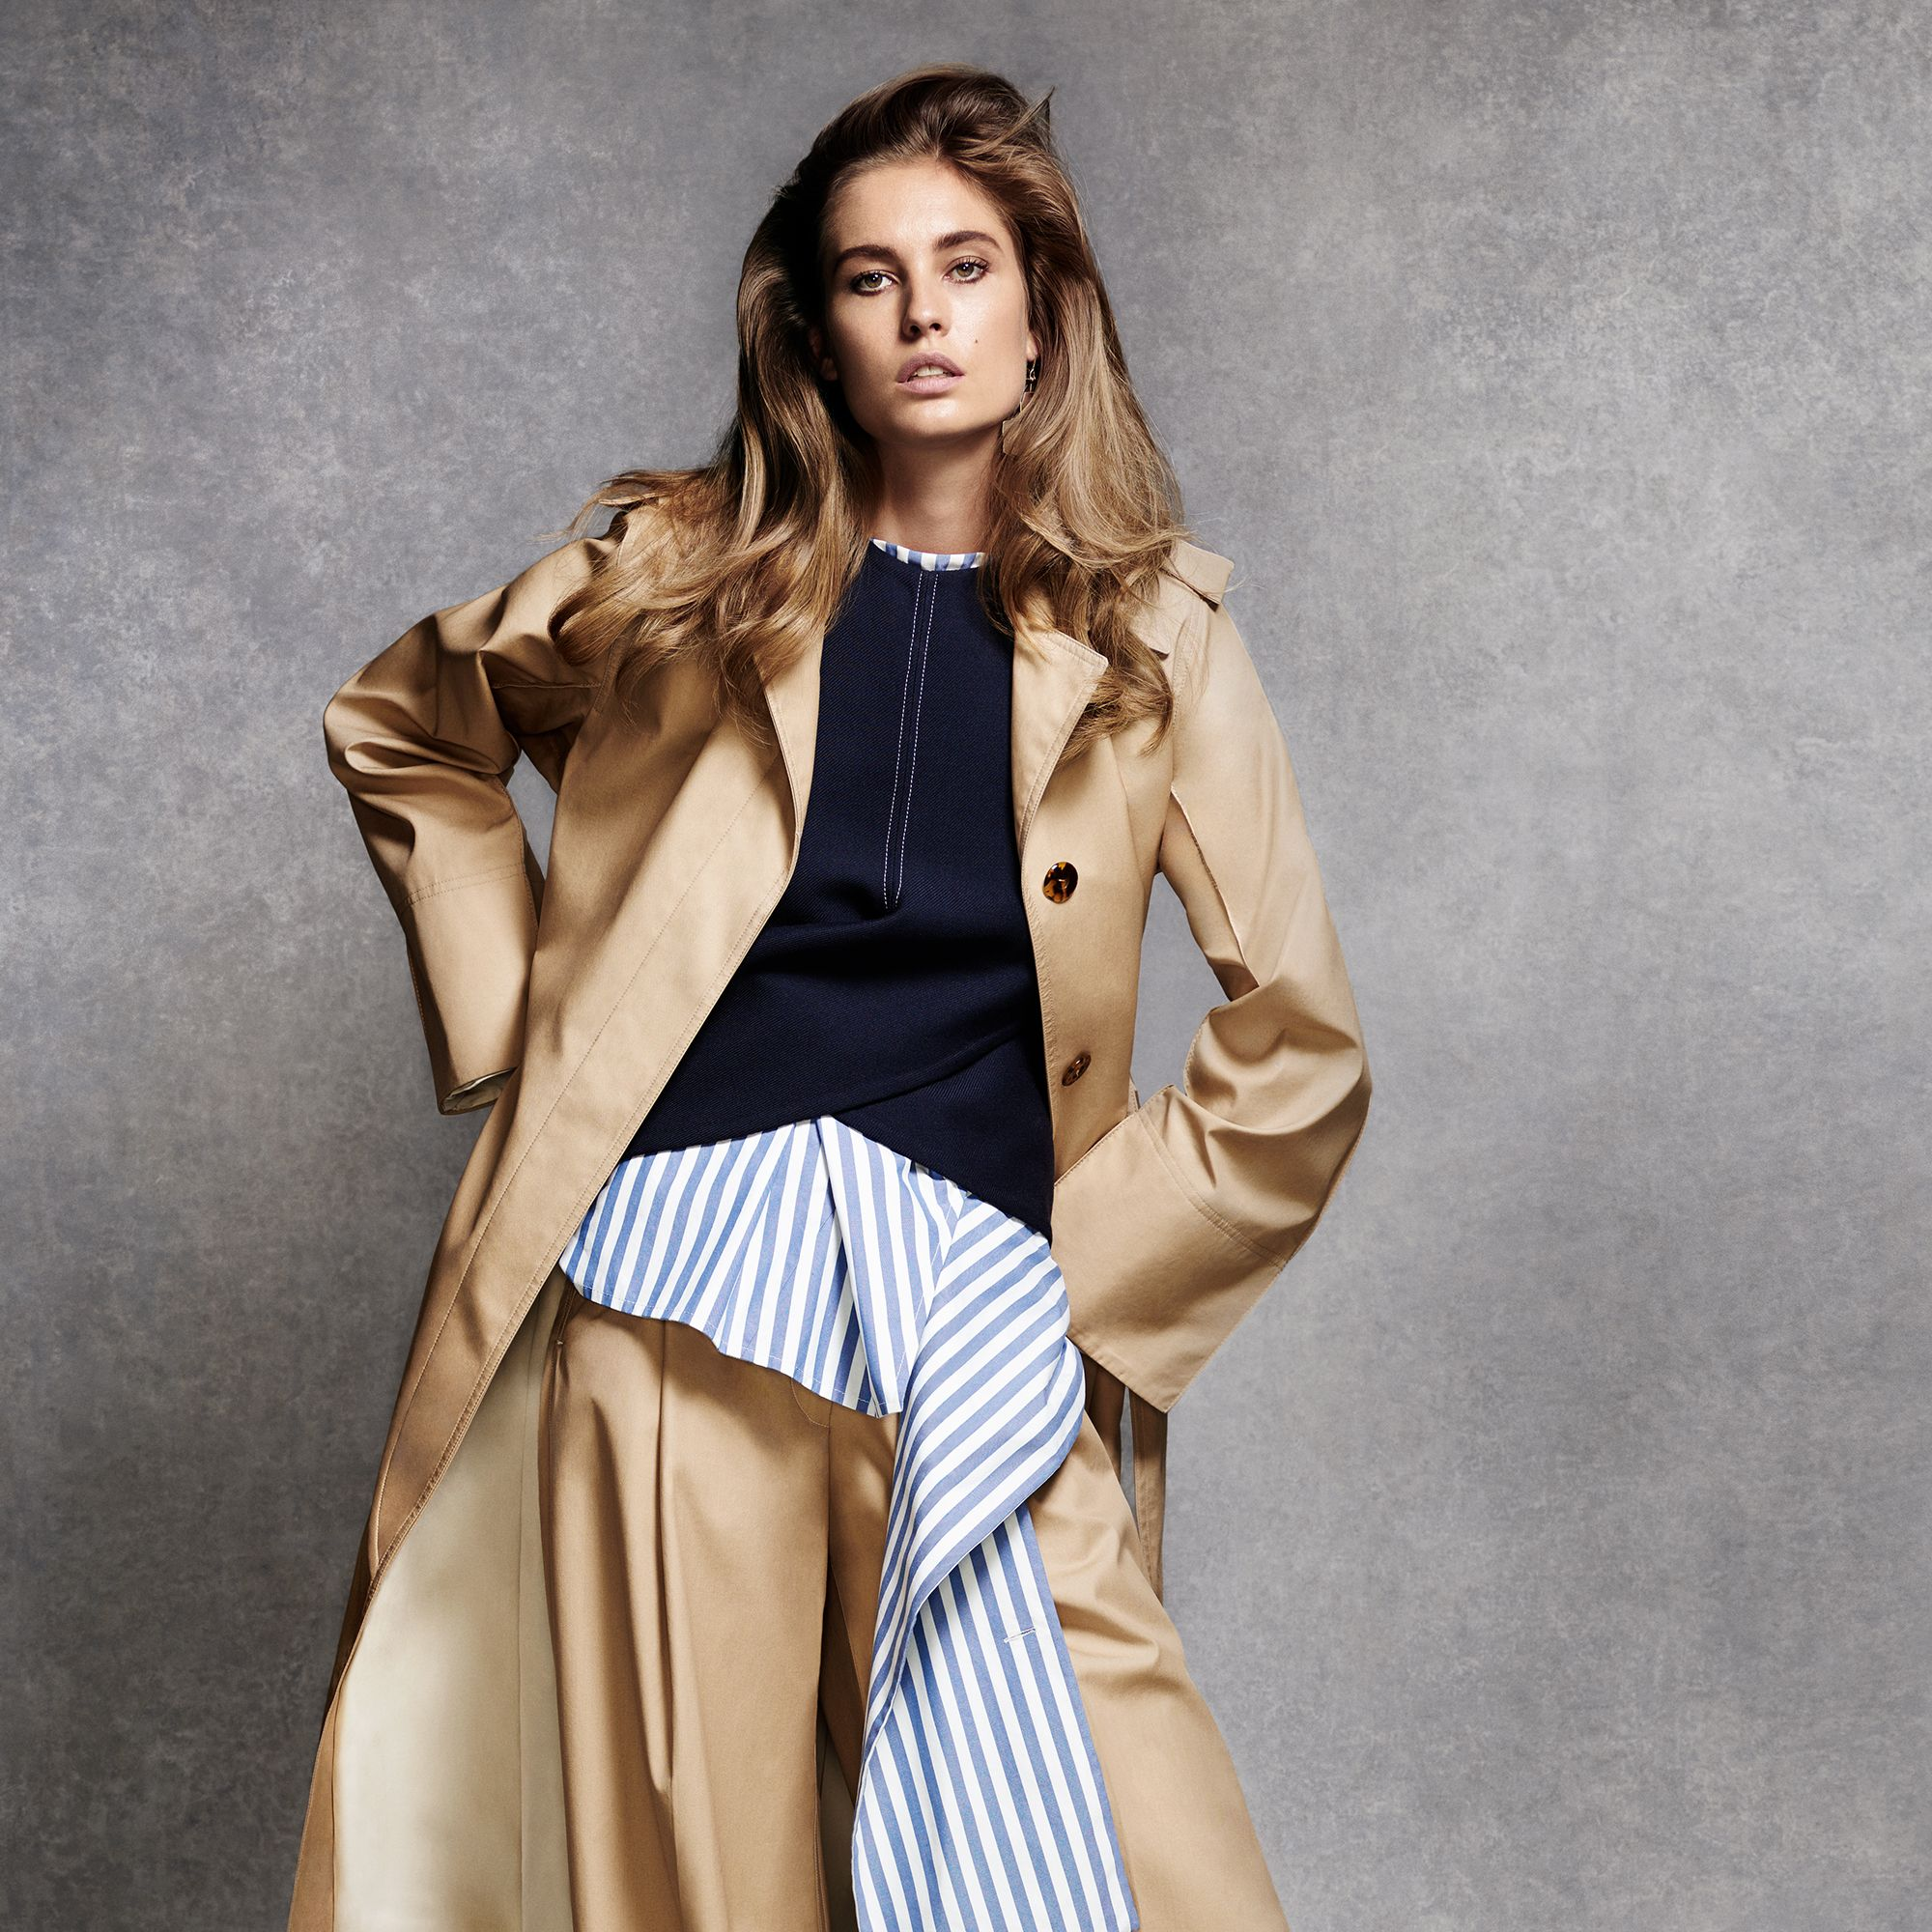 """<p><strong>Celine </strong><span class=""""redactor-invisible-space"""">coat, $3,900, top, $1,600, shirt, $2,000, pants, $1,100, and earrings $780, 212-535-3703.</span></p>"""